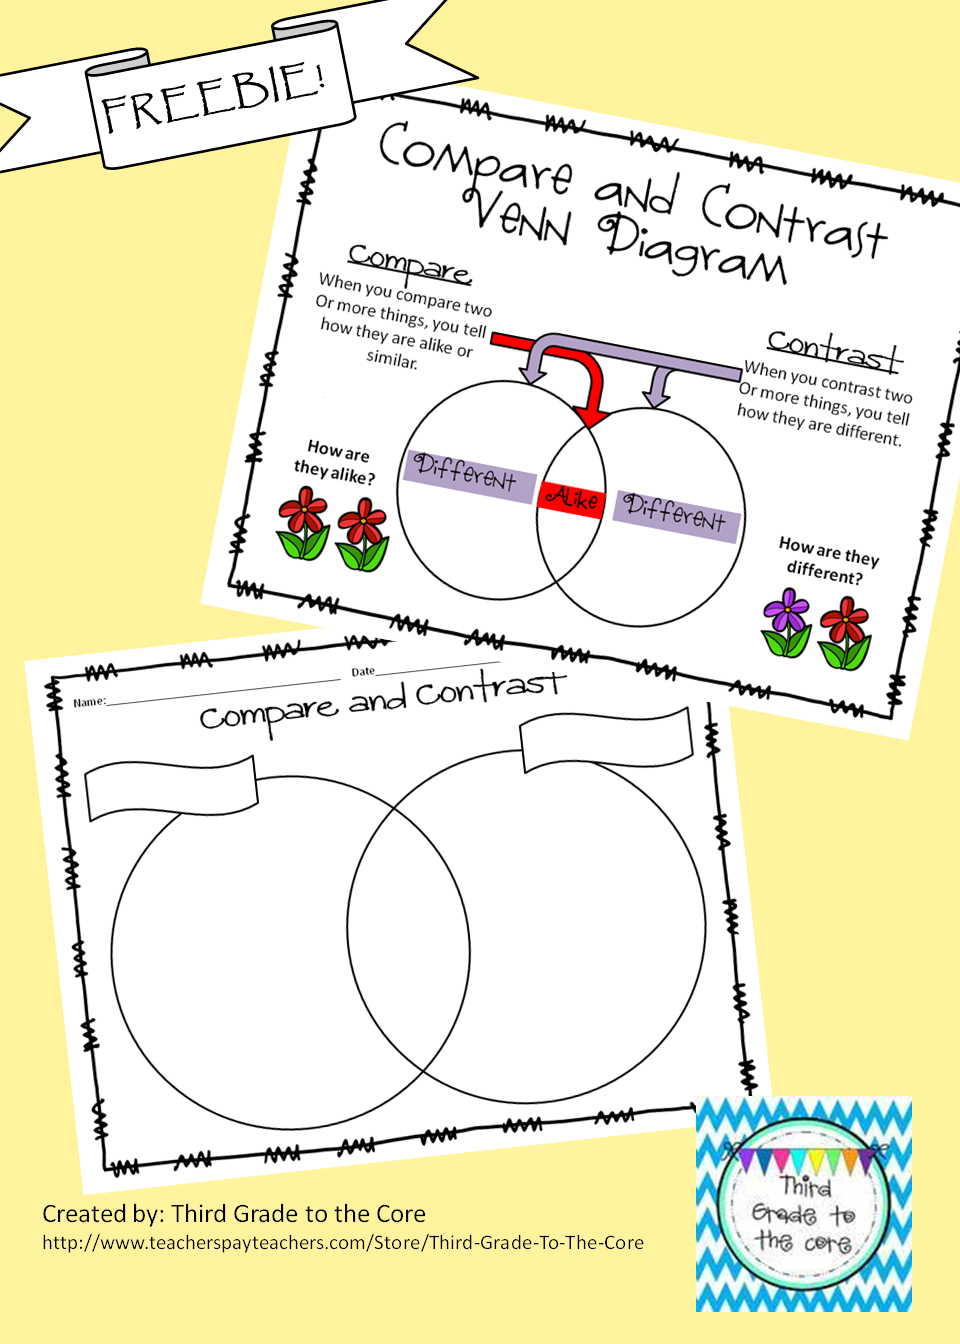 Freebie compare and contrast venn diagram with classroom poster compare and contrast venn diagram with classroom poster pooptronica Gallery